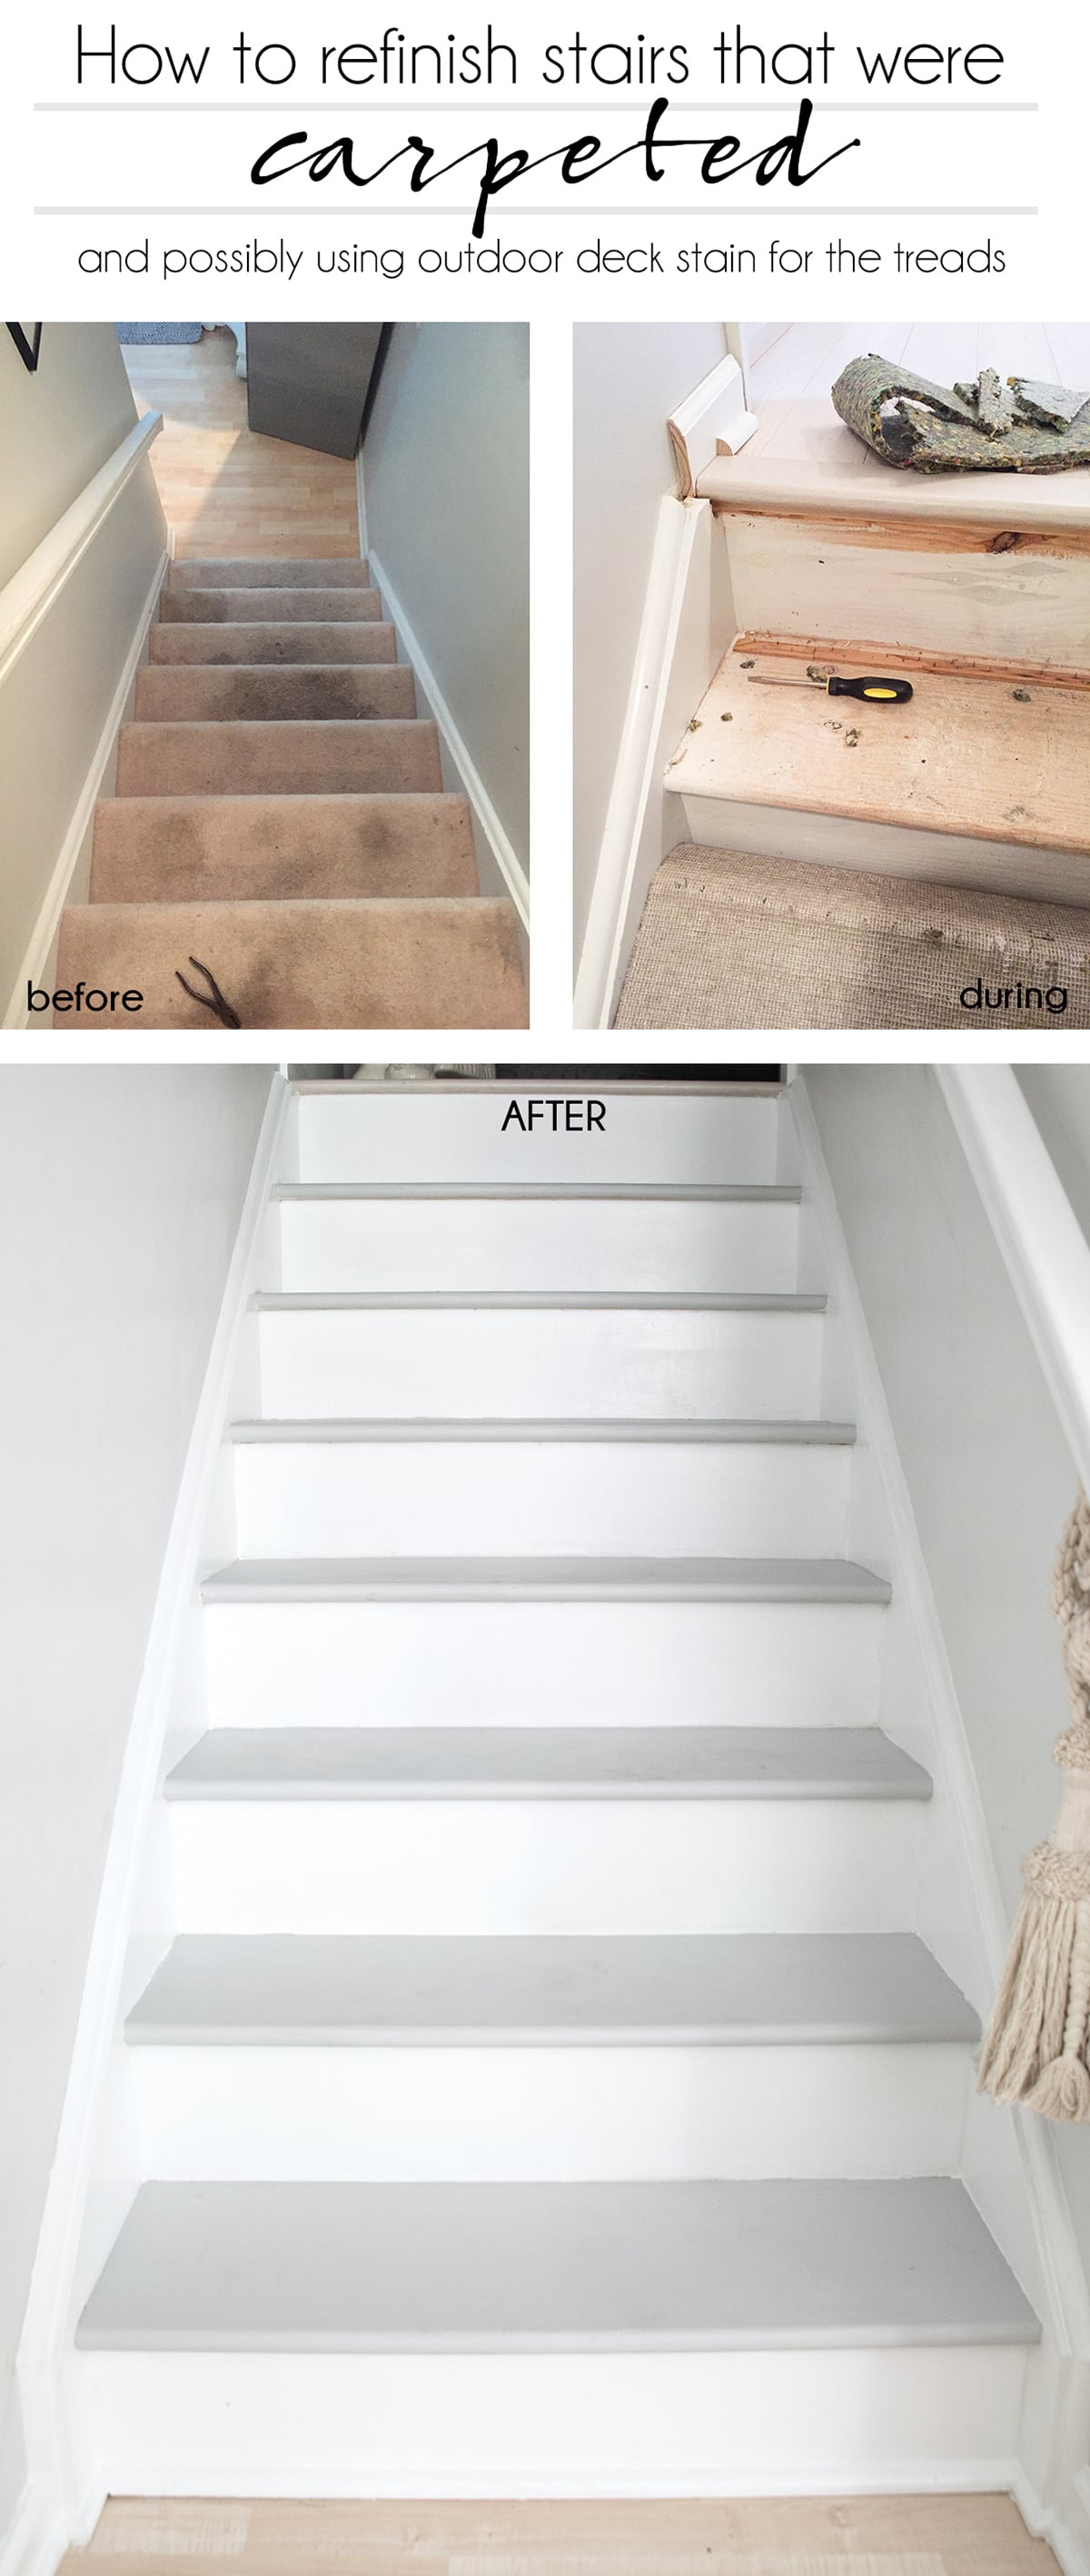 How to refinish stairs that were carpeted